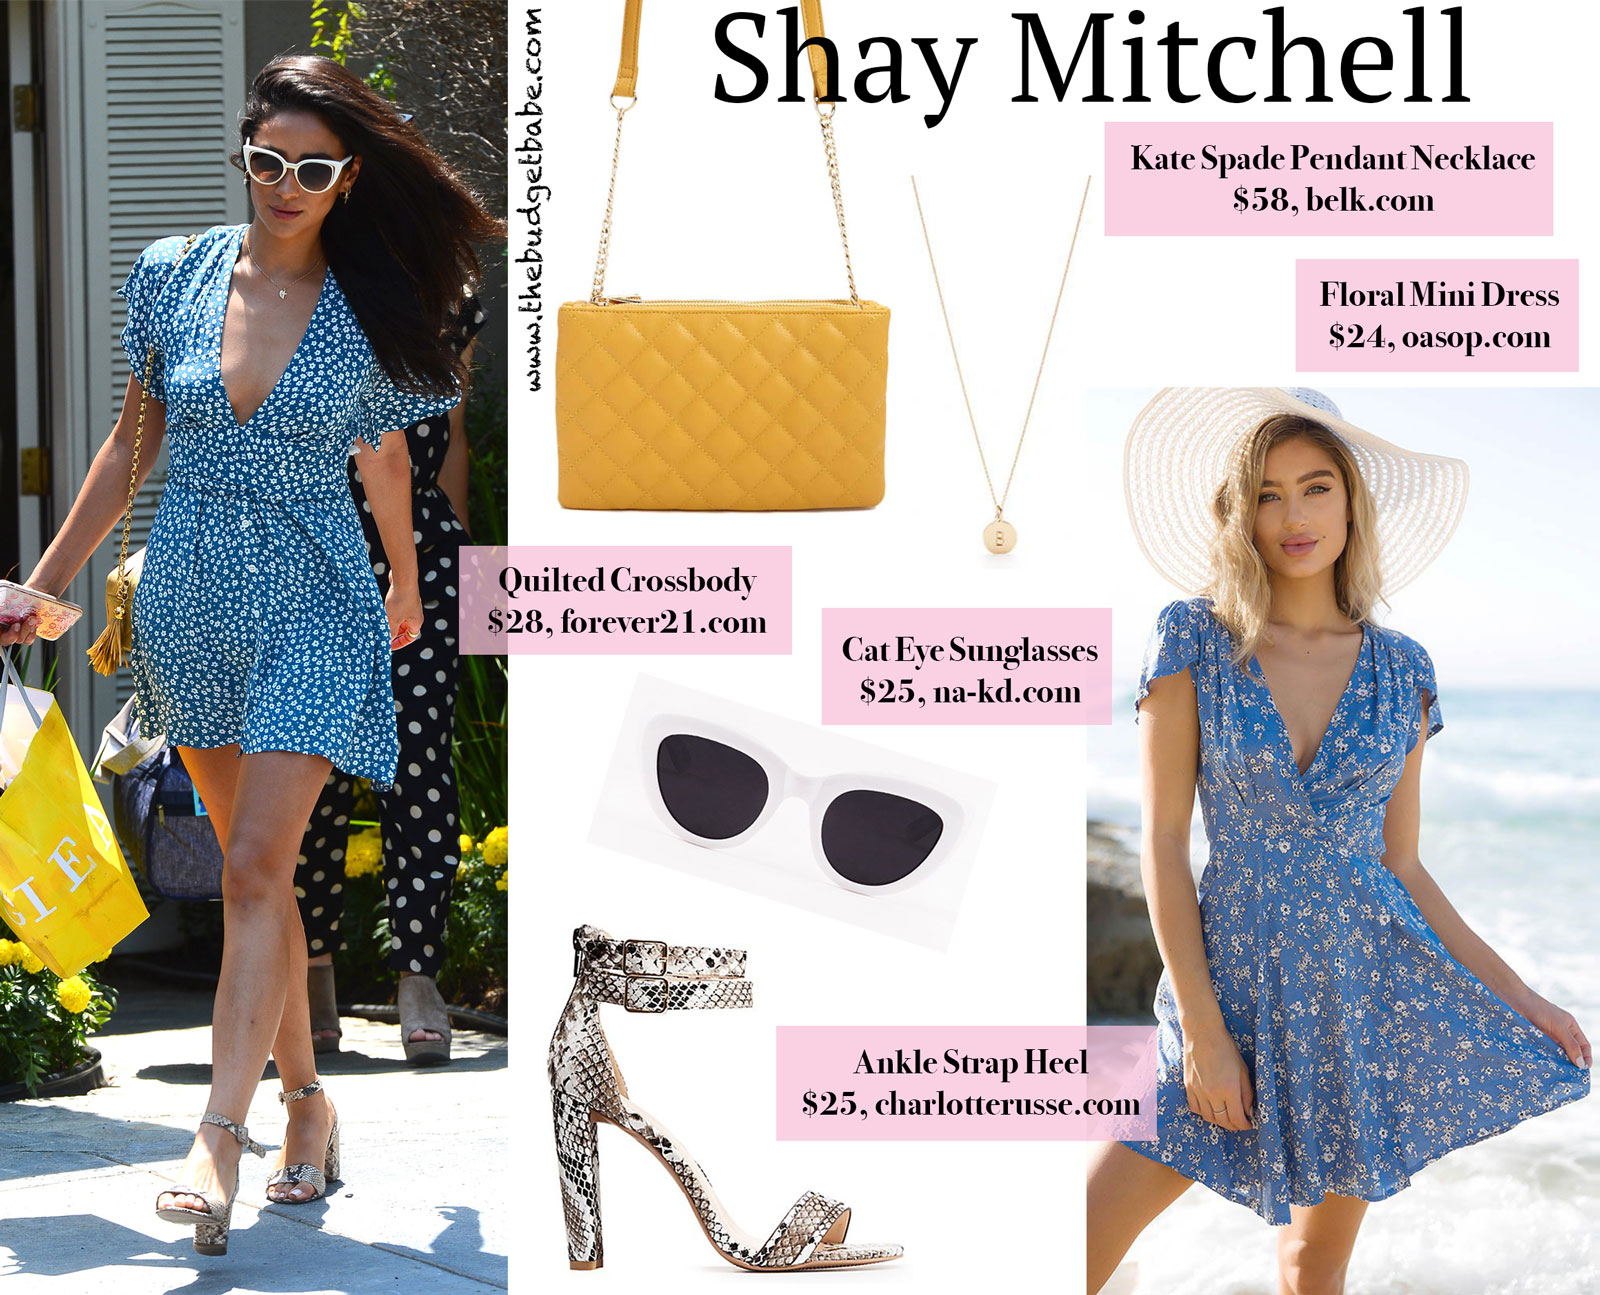 Shay Mitchell Blue Floral Mini Dress Look for Less